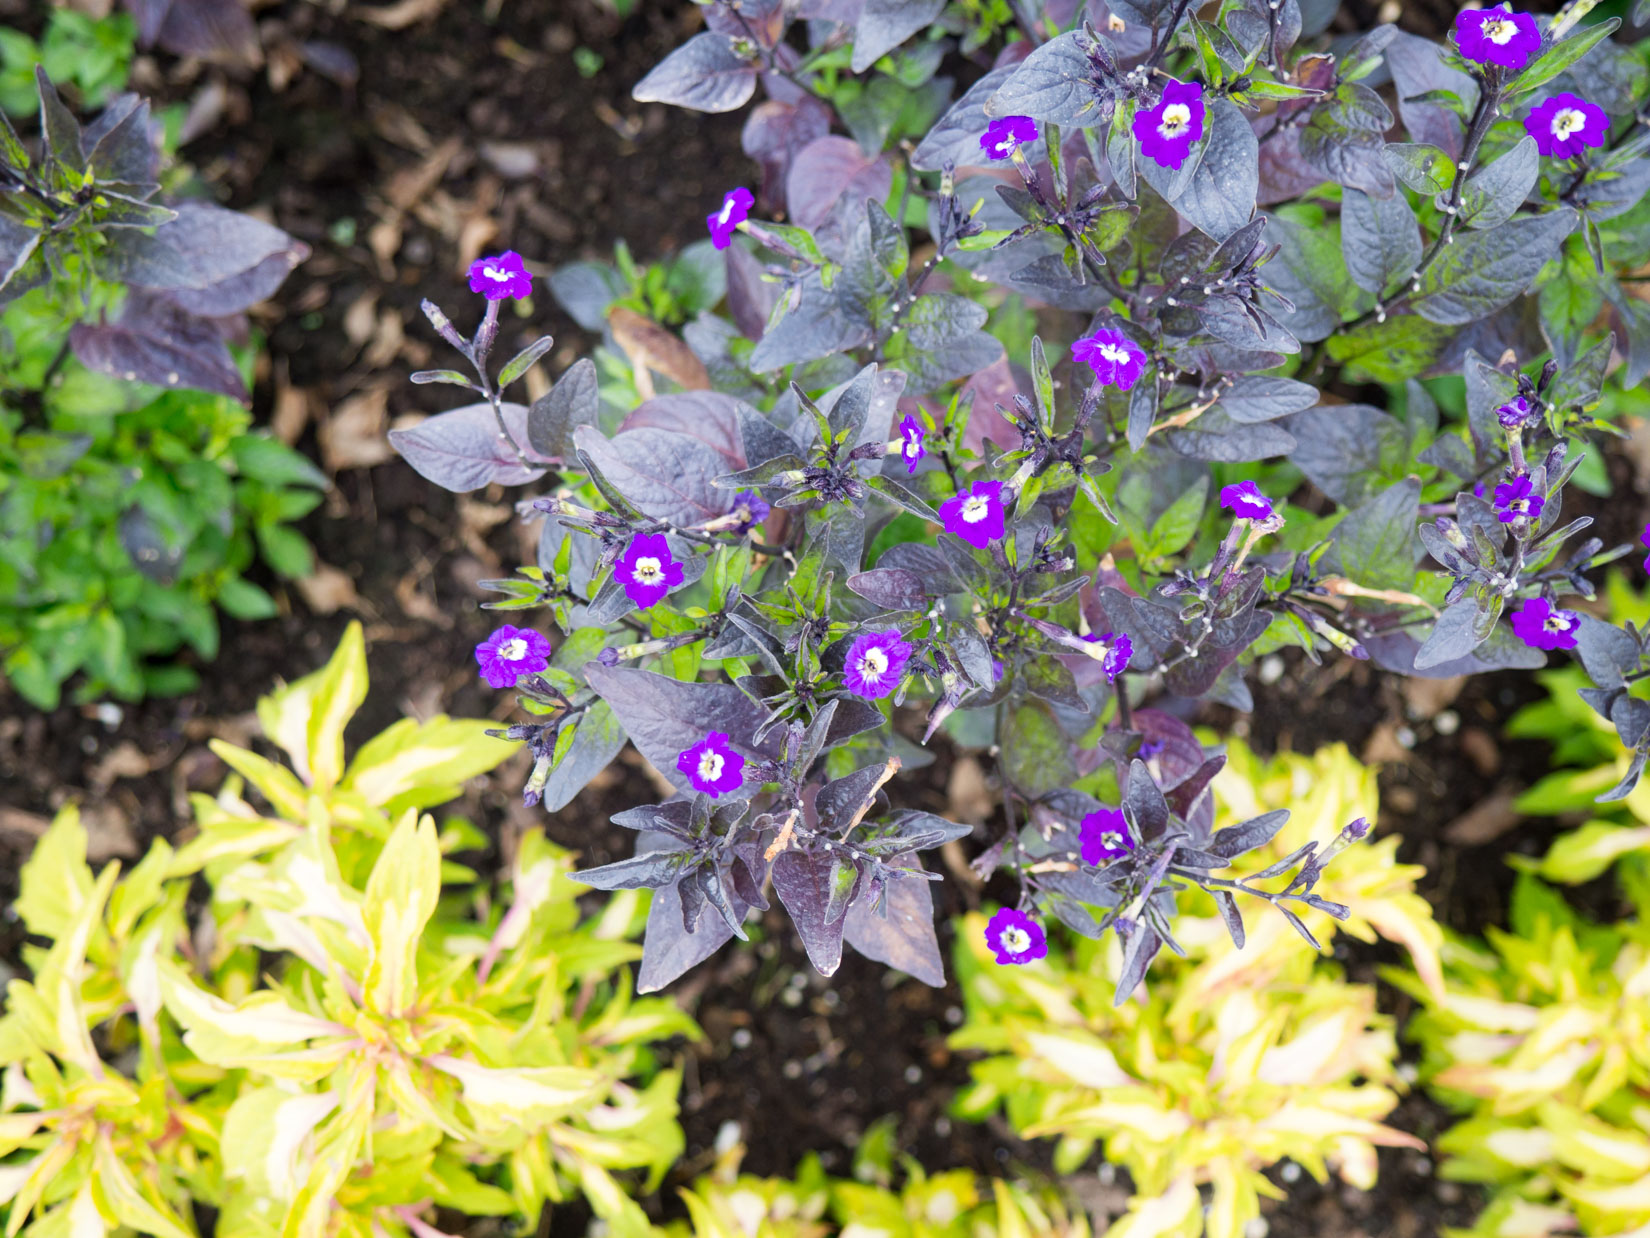 Small Purple Flowers in Garden